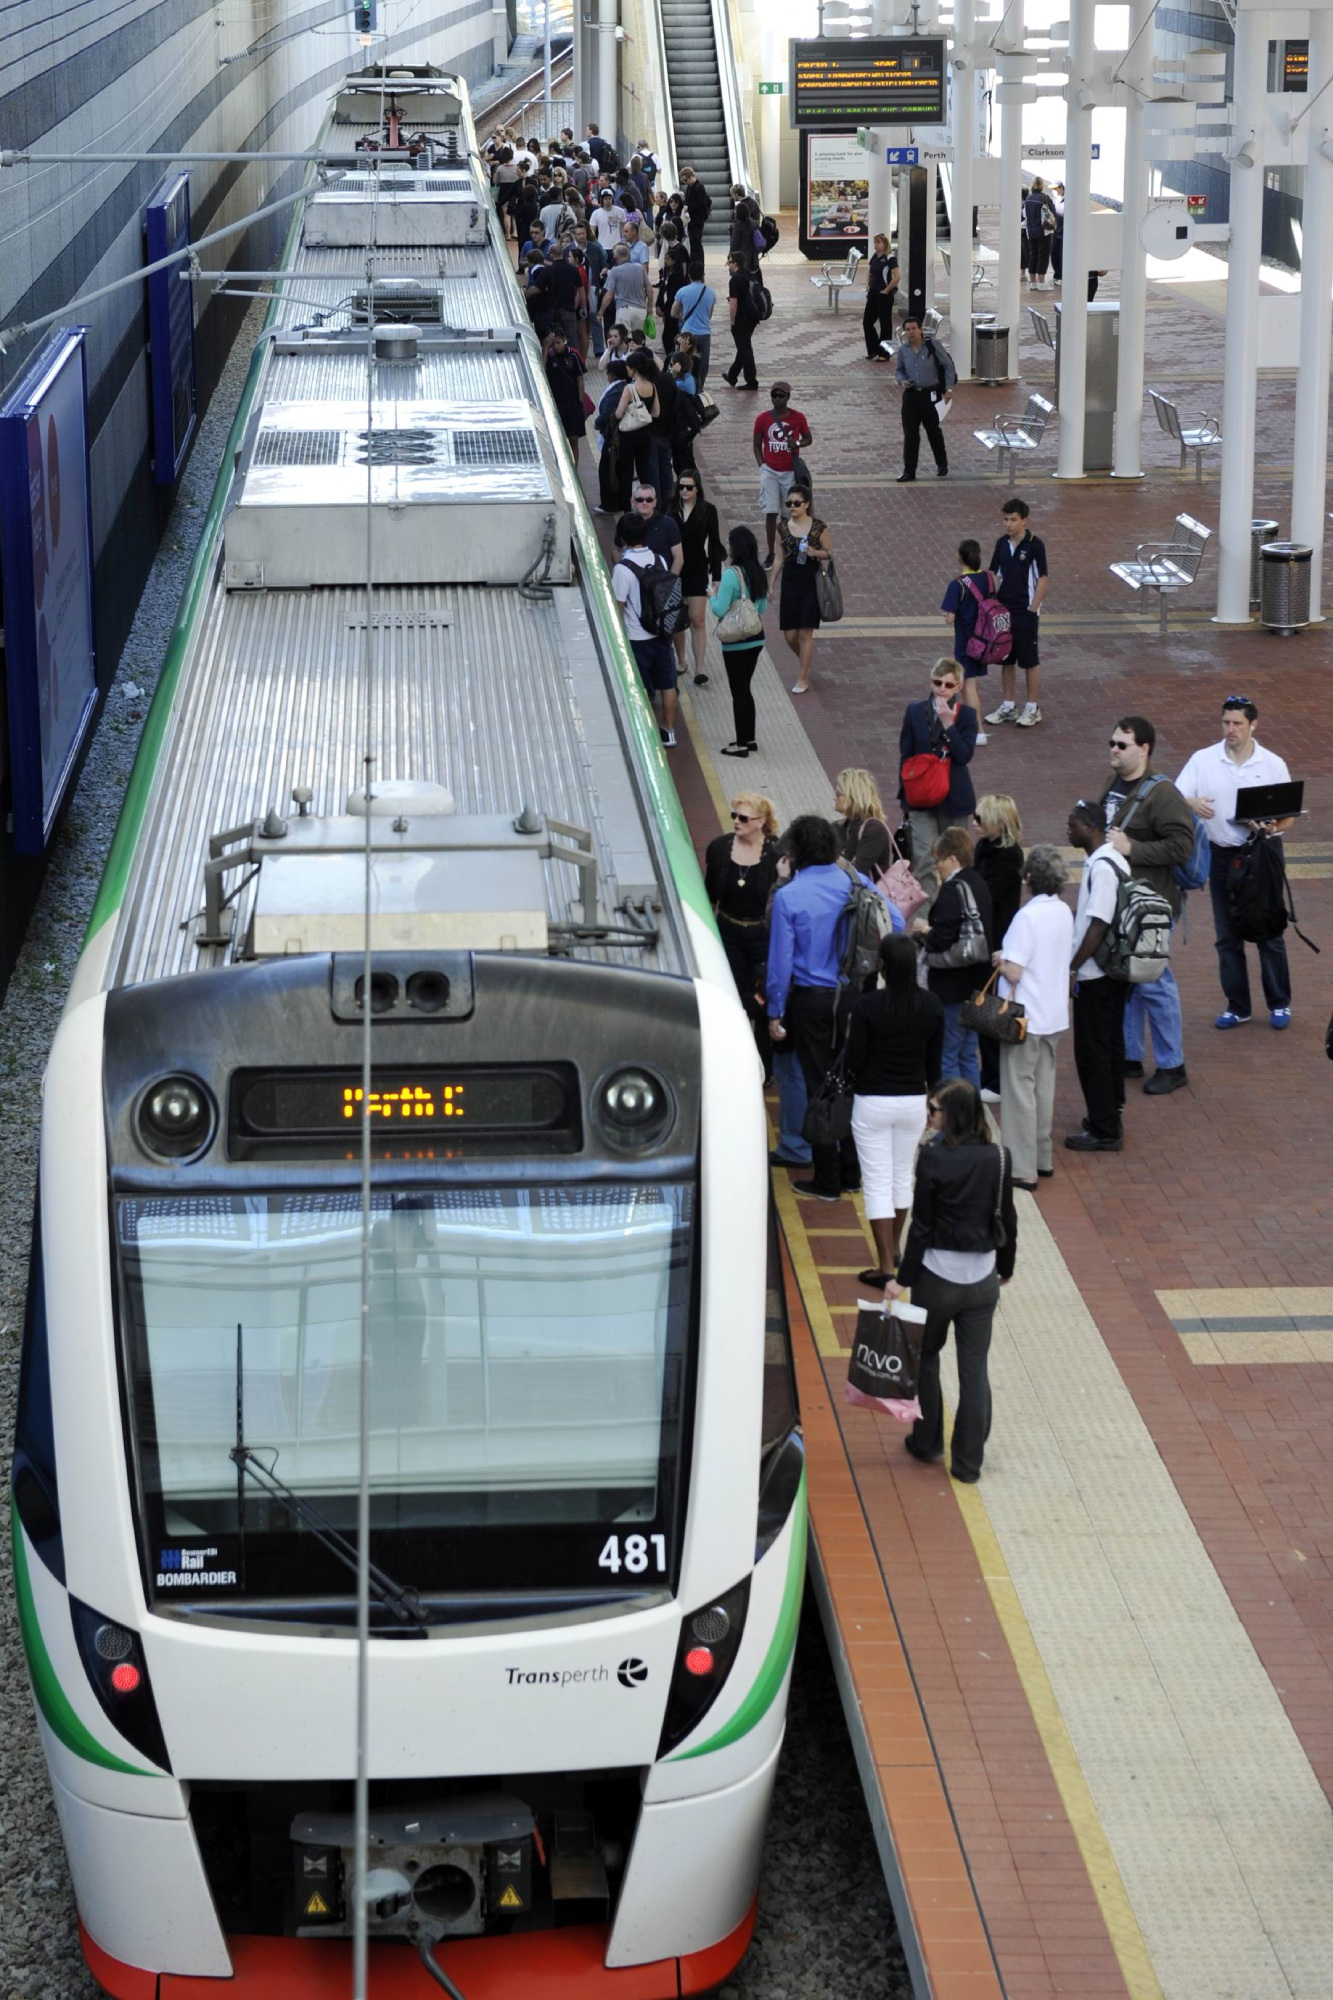 Night train services cancelled between Joondalup and Butler